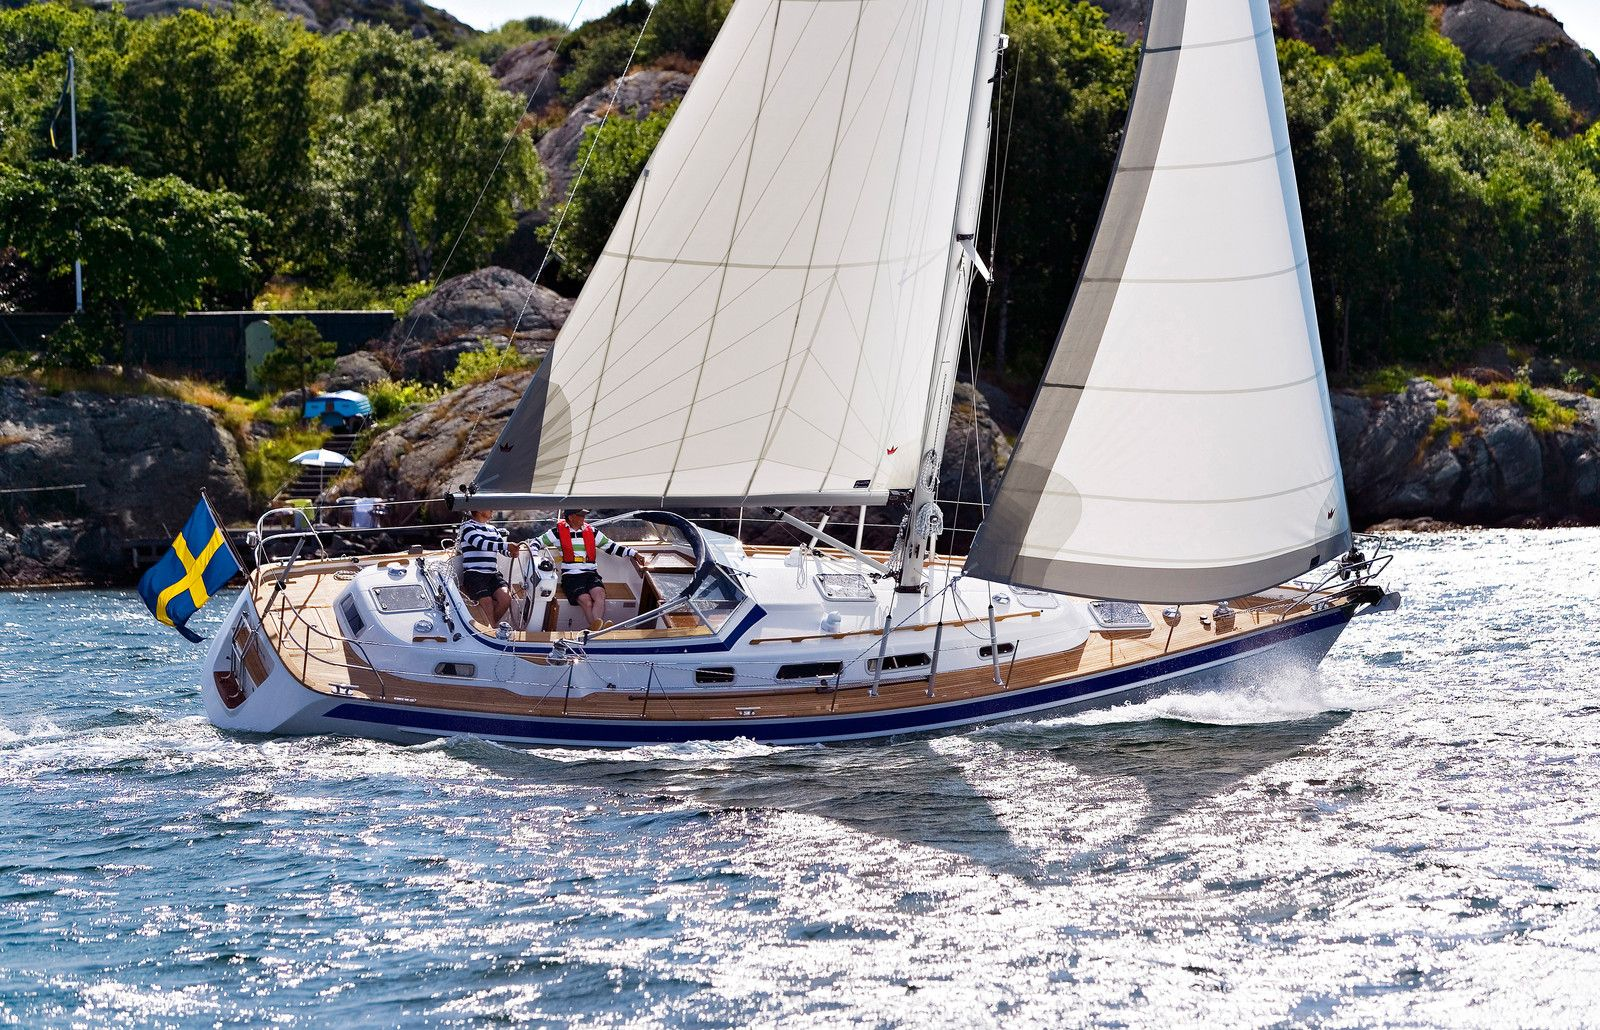 Hallberg Rassy Are Known For Their Center Cockpit Designs Their Distinctive Windshield Dodgers And Their Incredible Offshore Strengt Boat Sailing Yacht Yacht